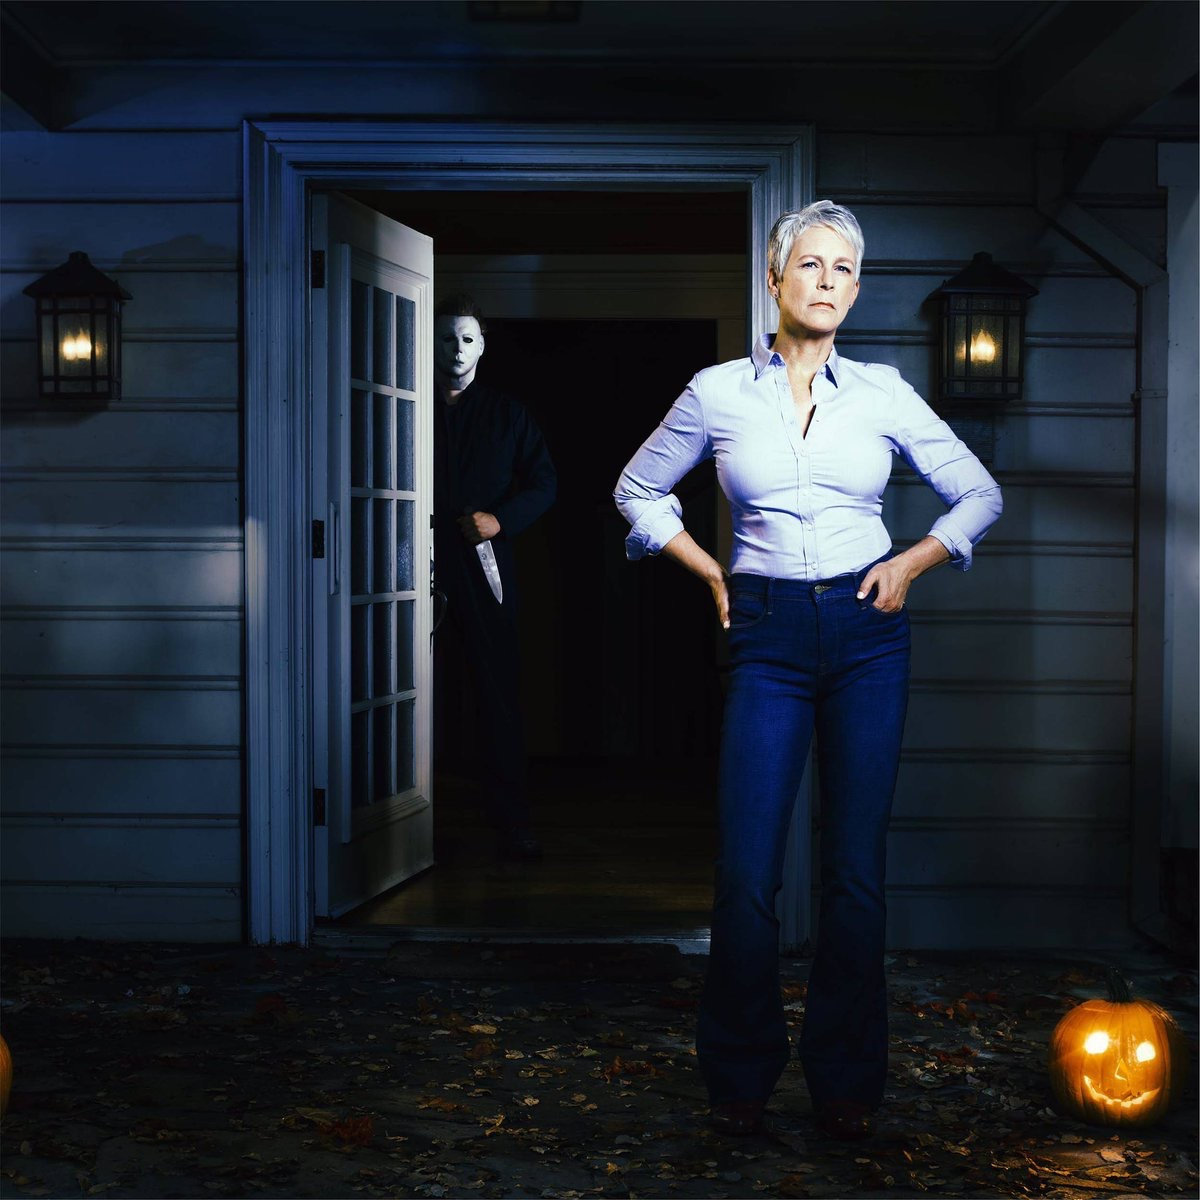 Jamie Lee Curtis Returns to Haddonfield in Blumhouse's Halloween!